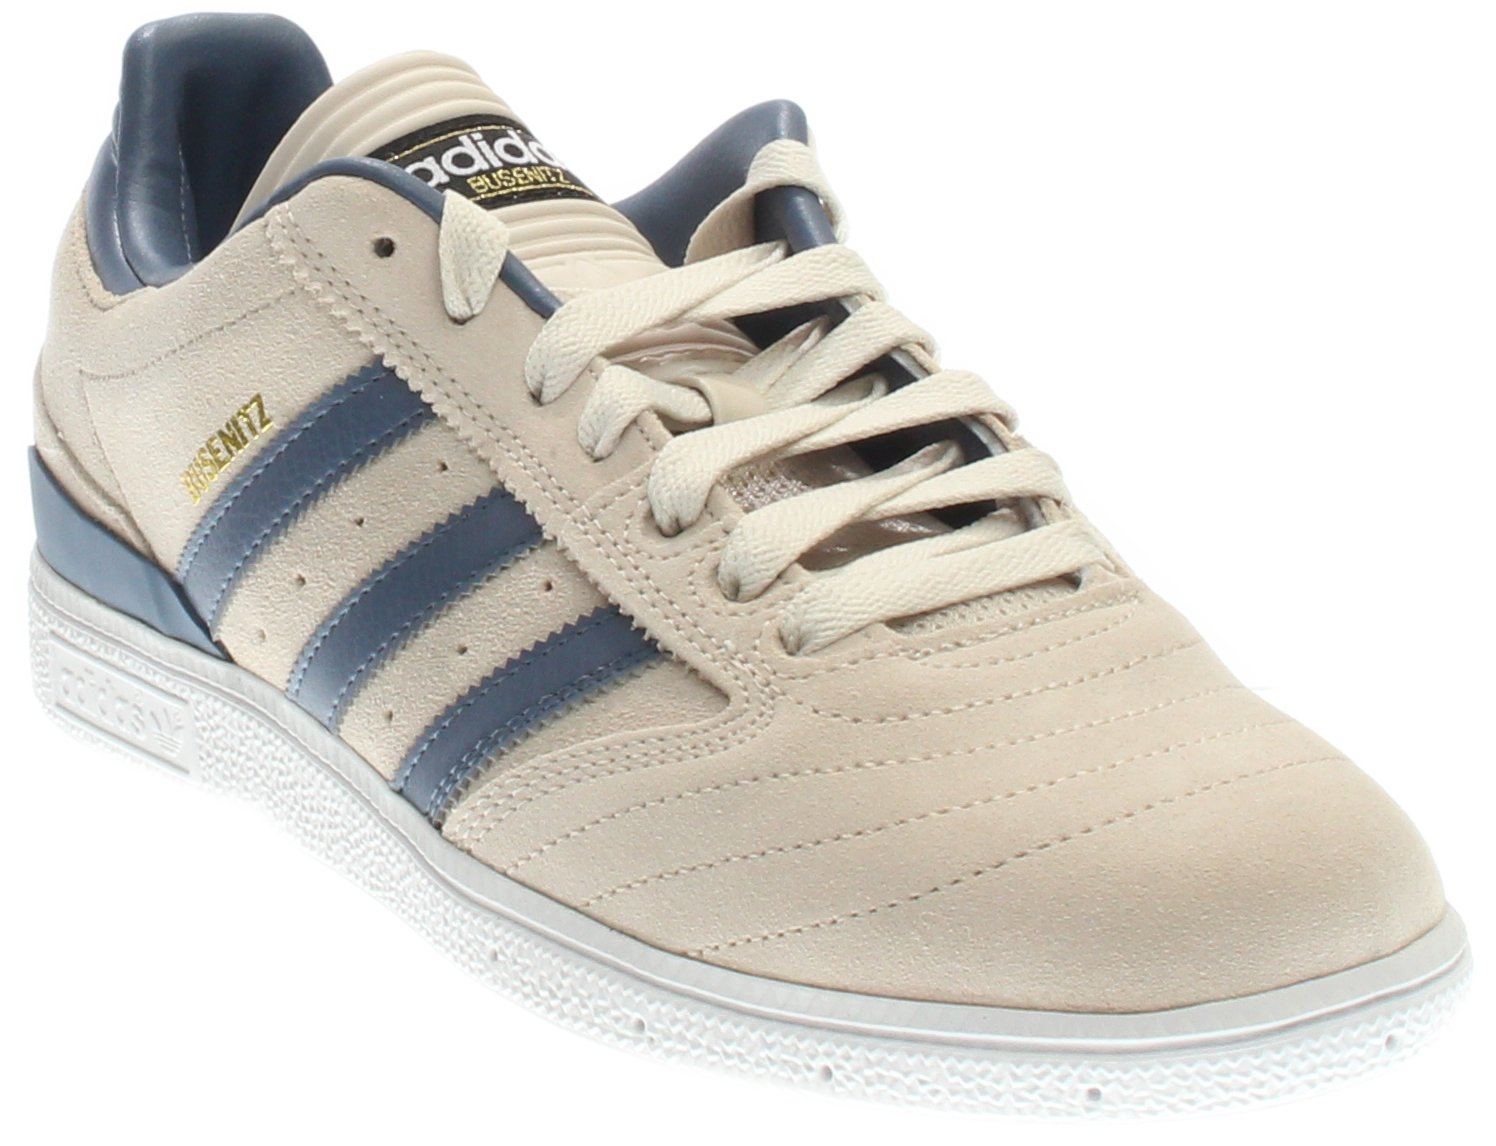 separation shoes 3e391 3790a Galleon - Adidas Busenitz Pro Shoe - Mens Clear BrownTech InkWhite  Suede, 10.5